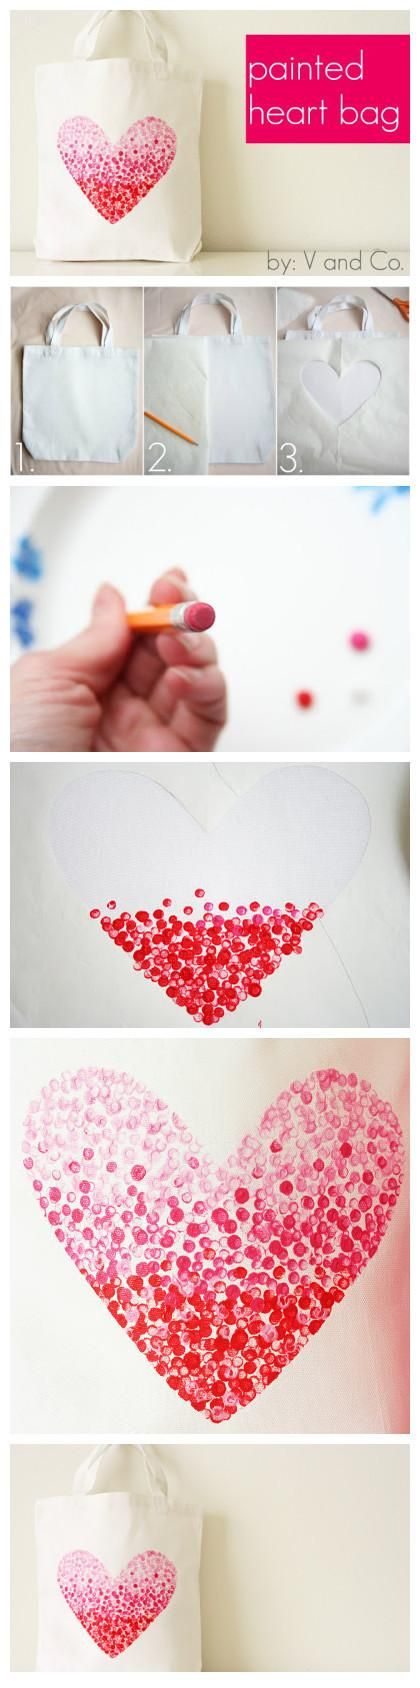 56 best Holiday: Valentine\'s Day images on Pinterest | Valentines ...